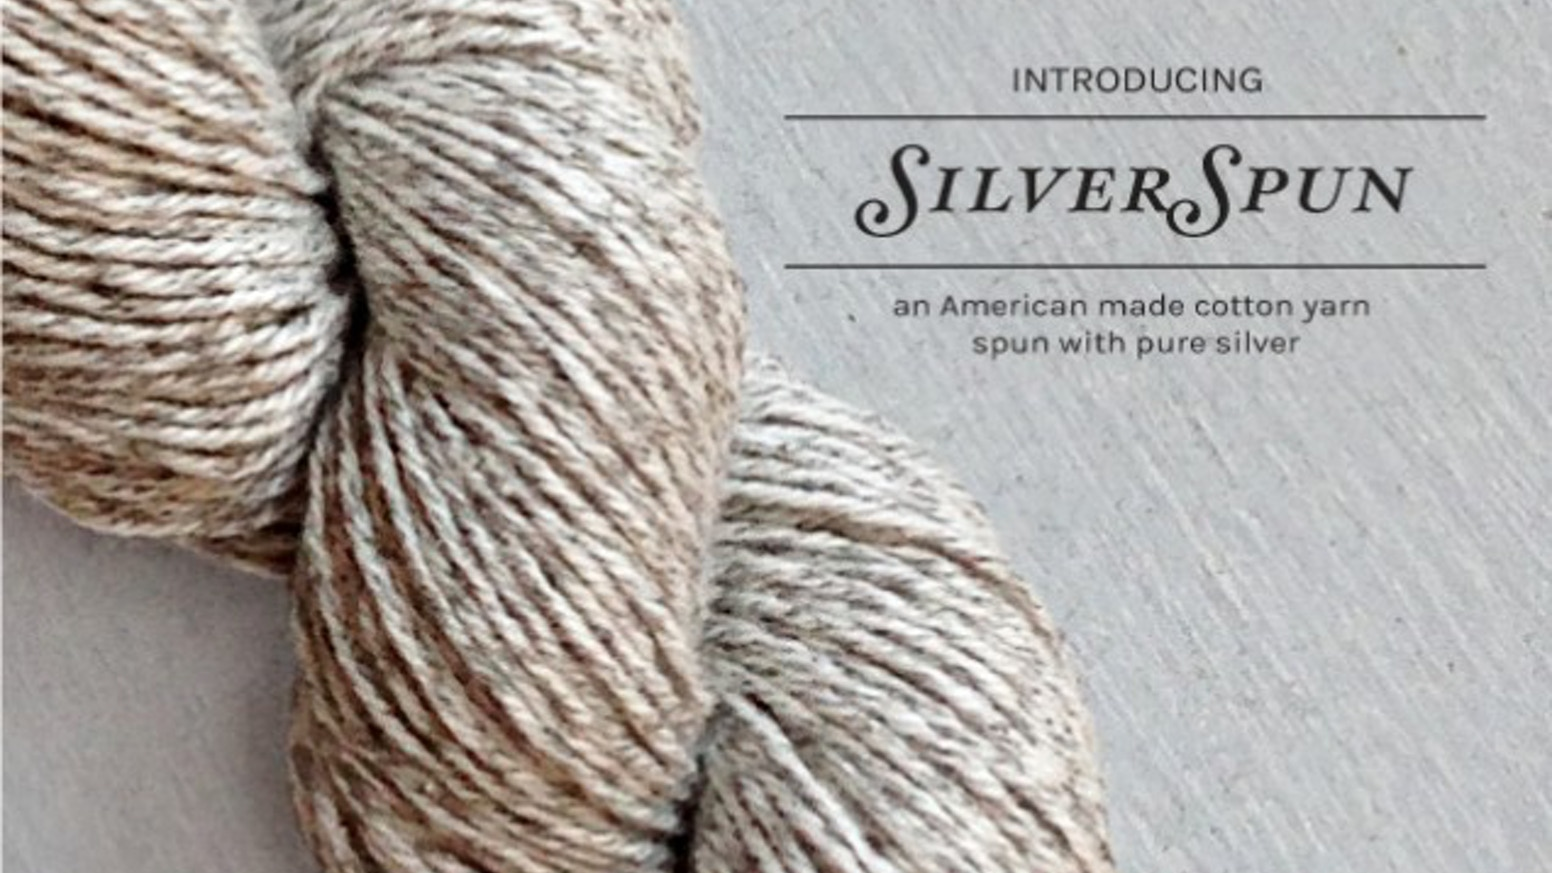 SilverSpun - An American made yarn spun with pure silver  by